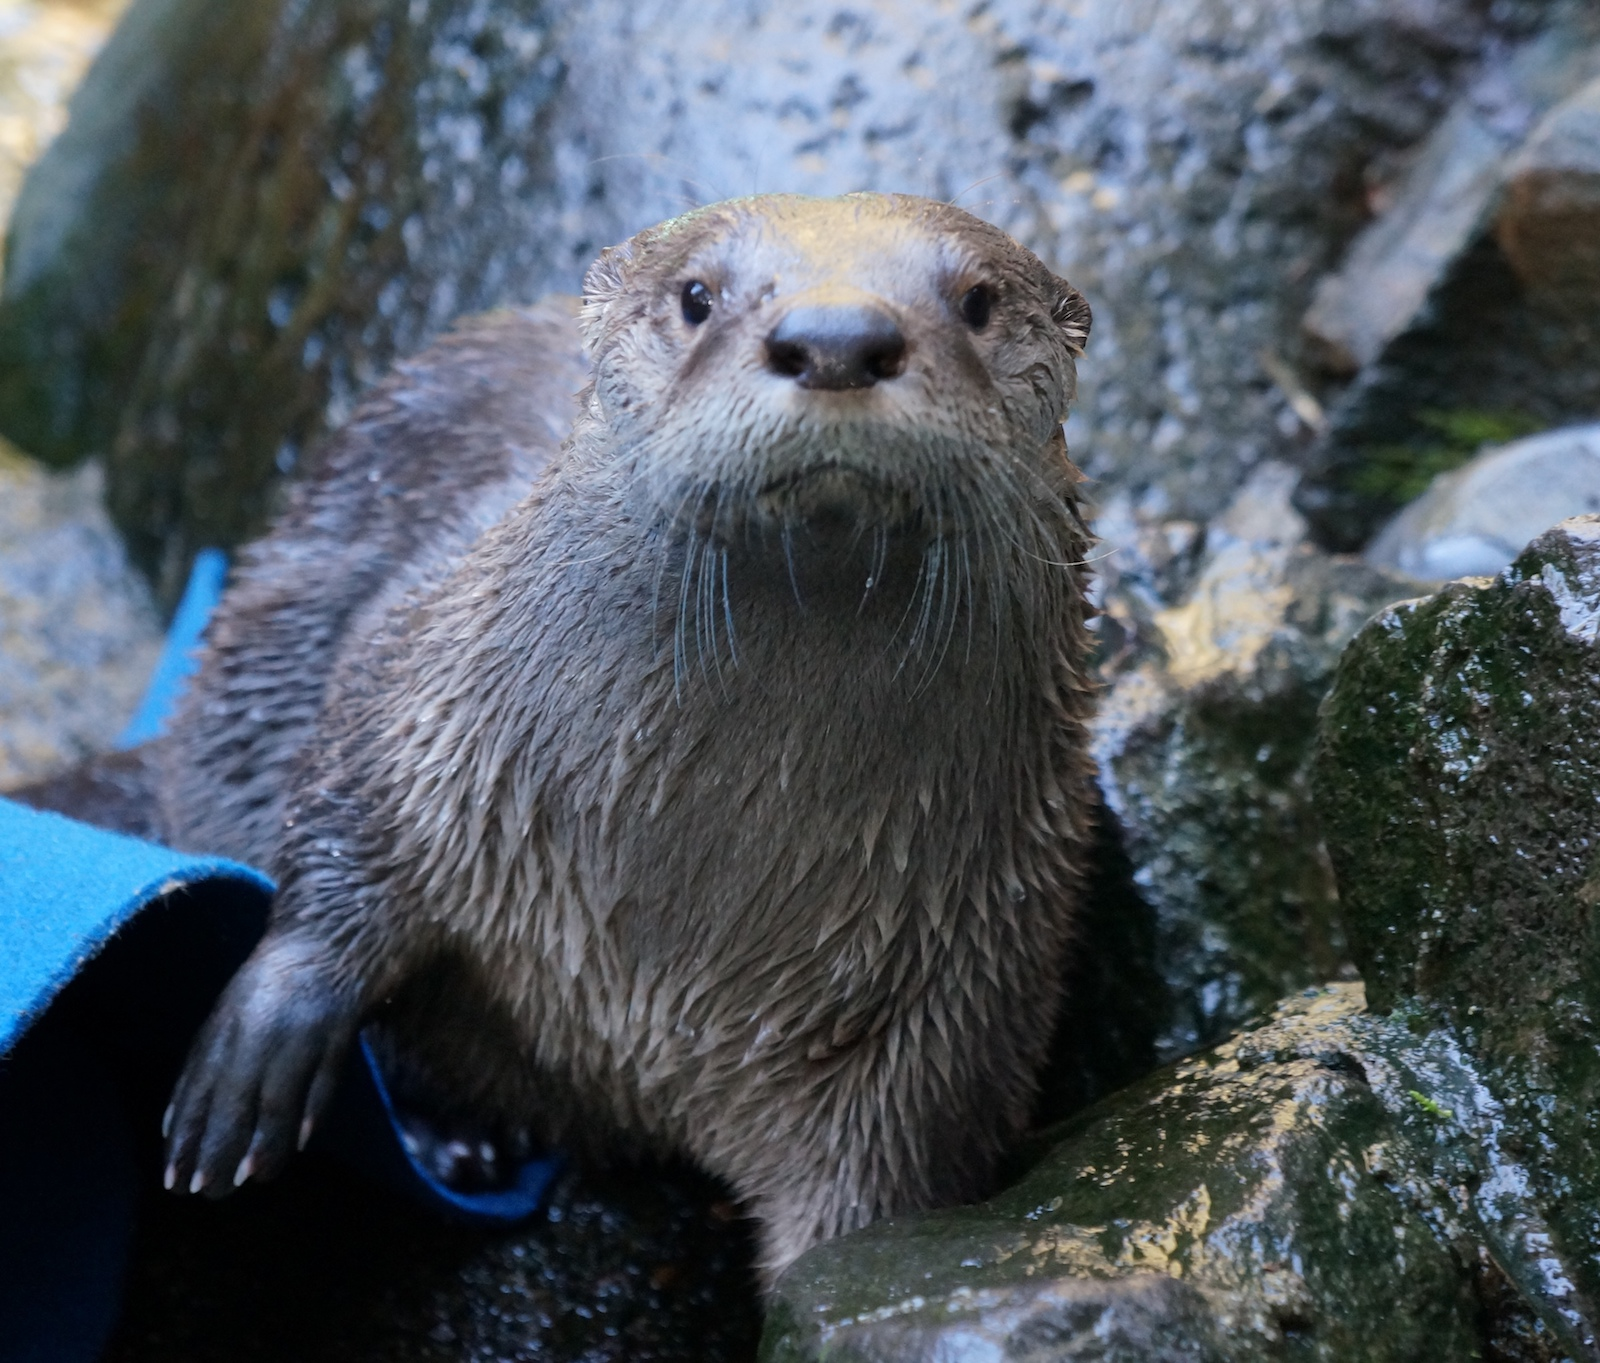 Meet river otter Molalla at the Seattle Aquarium!